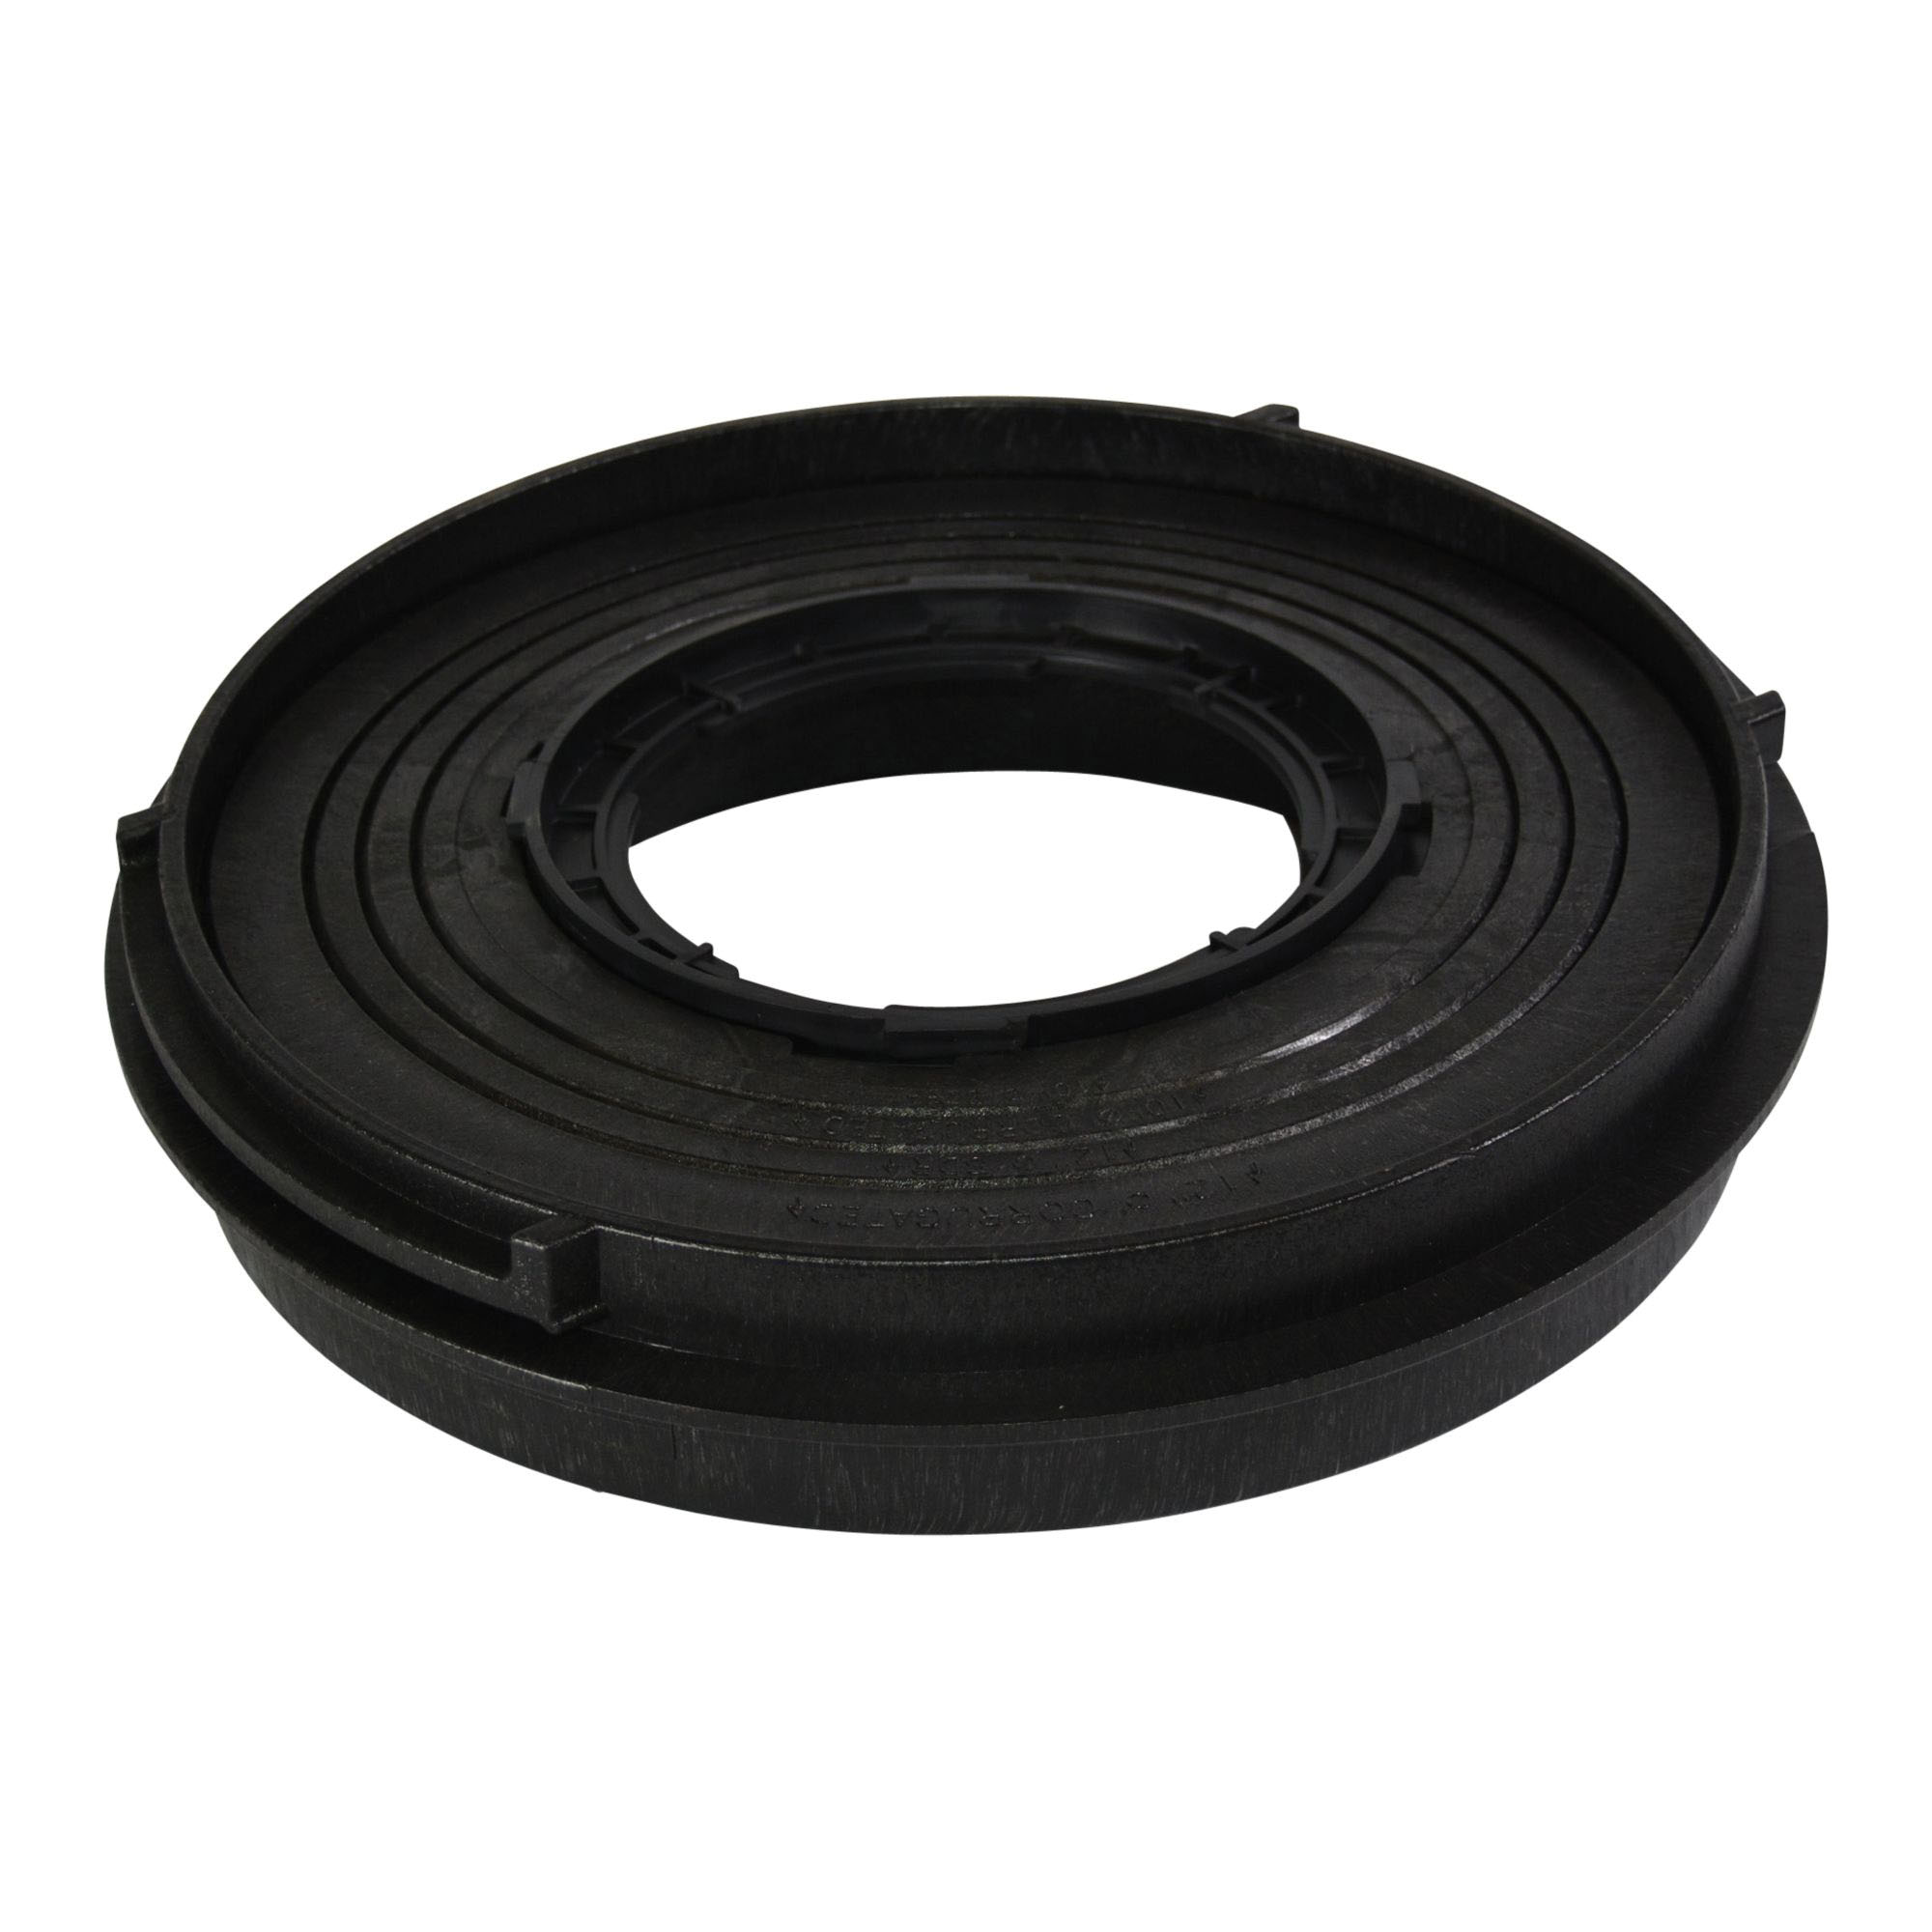 NDS® 2410 Black HDPE Universal Adapter for 3 in, 4 in, 6 in, 8 in, 10 in, 12 in Sewer and Drain Pipe